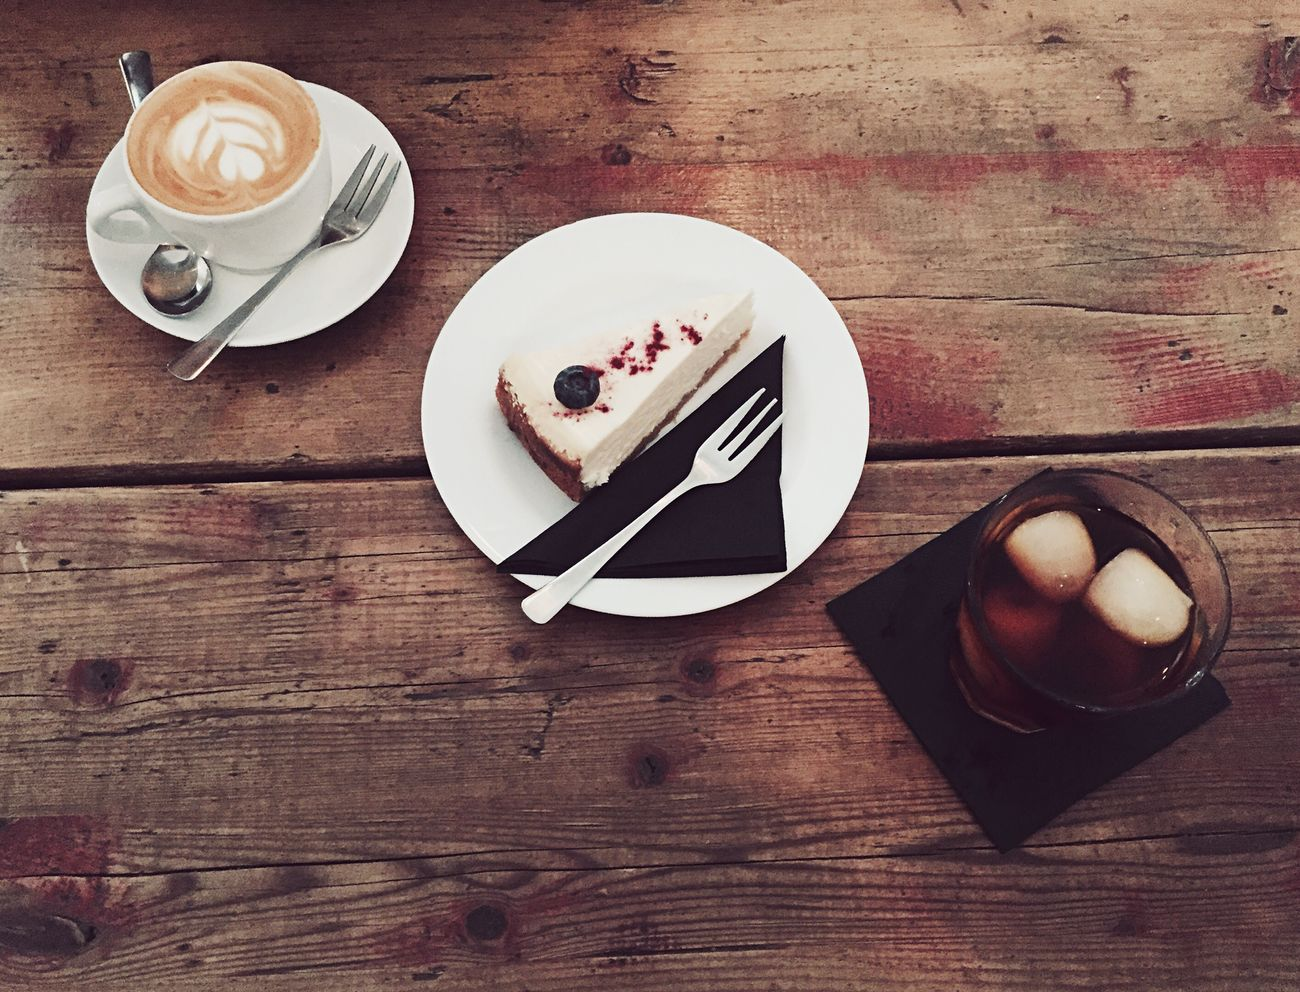 Drink Coffee - Drink Table Food And Drink Coffee Cup Refreshment Wood - Material High Angle View Cappuccino Freshness Frothy Drink No People Latte Indoors  Froth Art Close-up Day Cologne